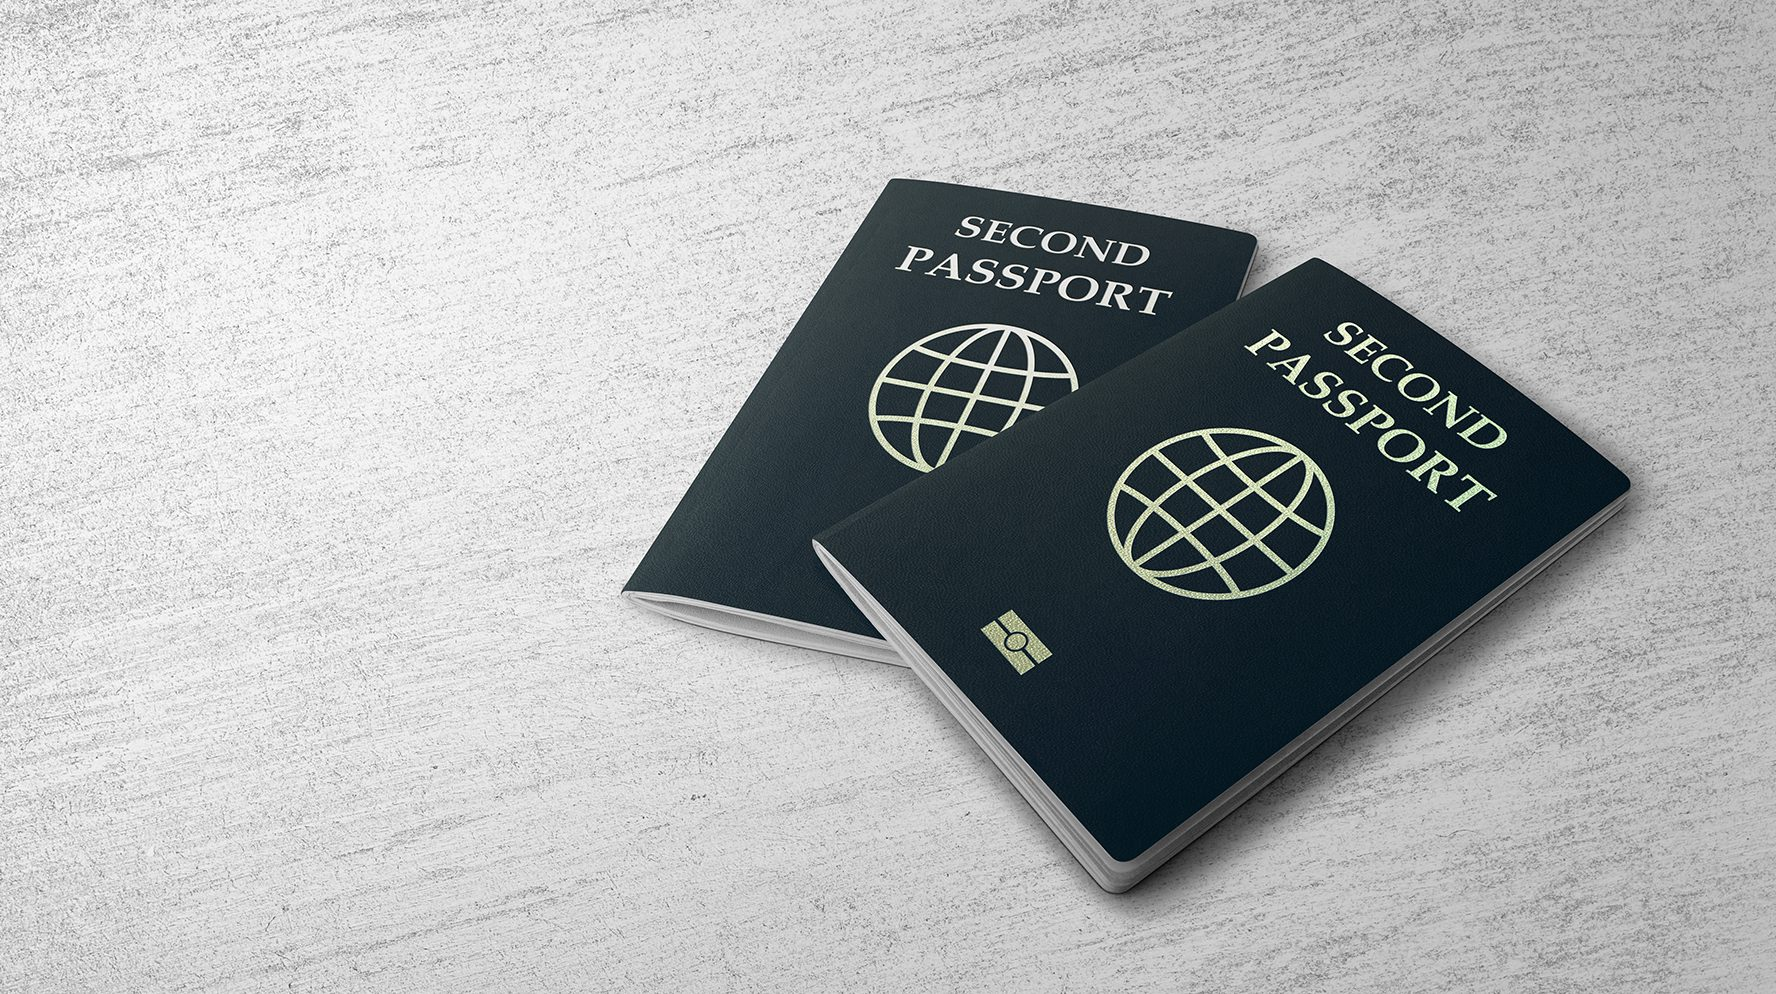 The Rise of Second Passports in The New World